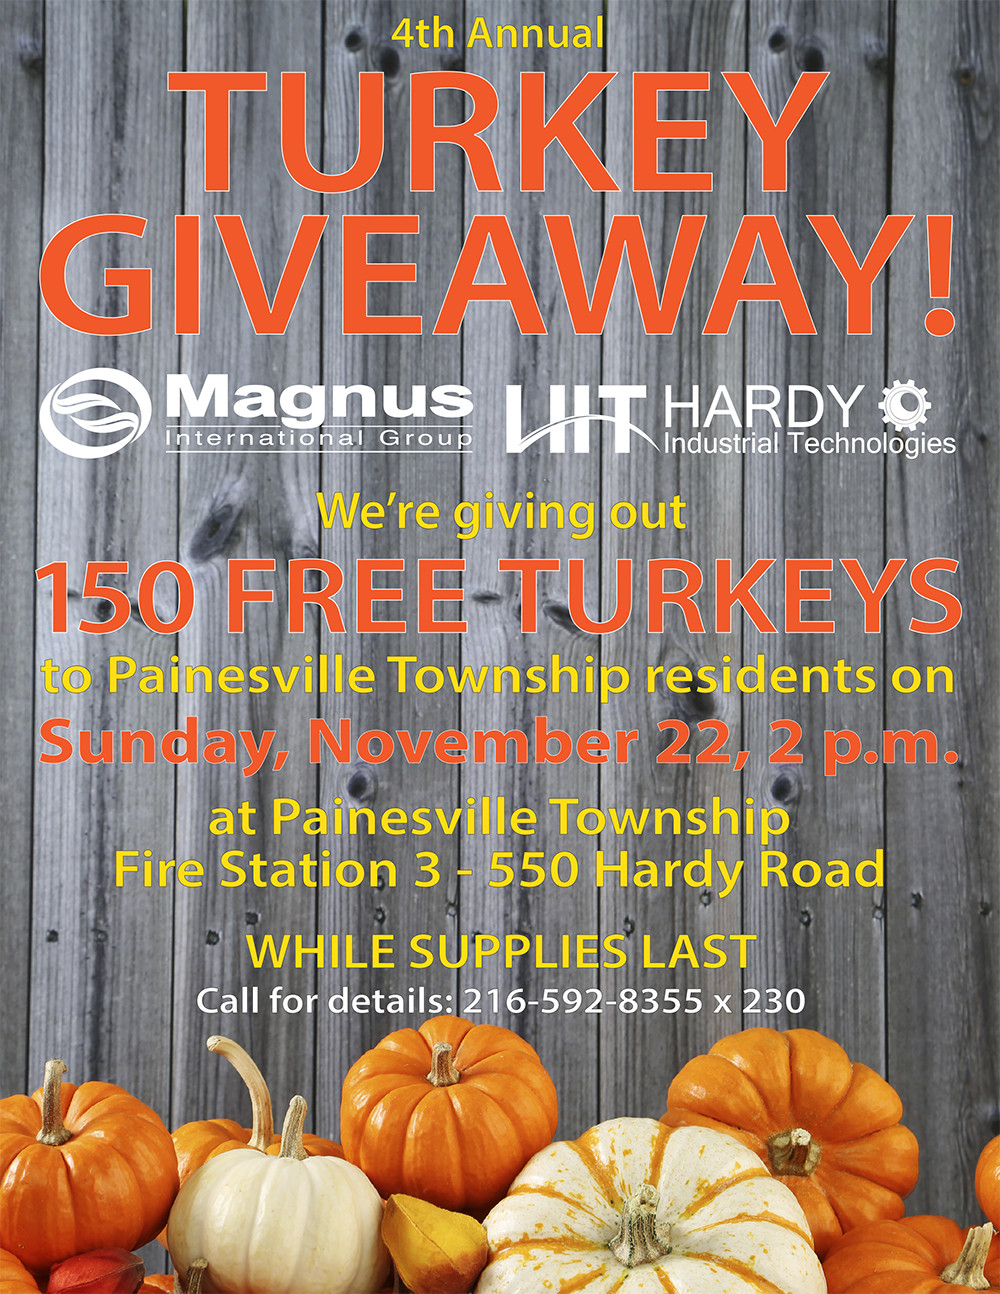 Thanksgiving Turkey Giveaway  Magnus Hardy 4th Annual Turkey Giveaway Nov 22 in